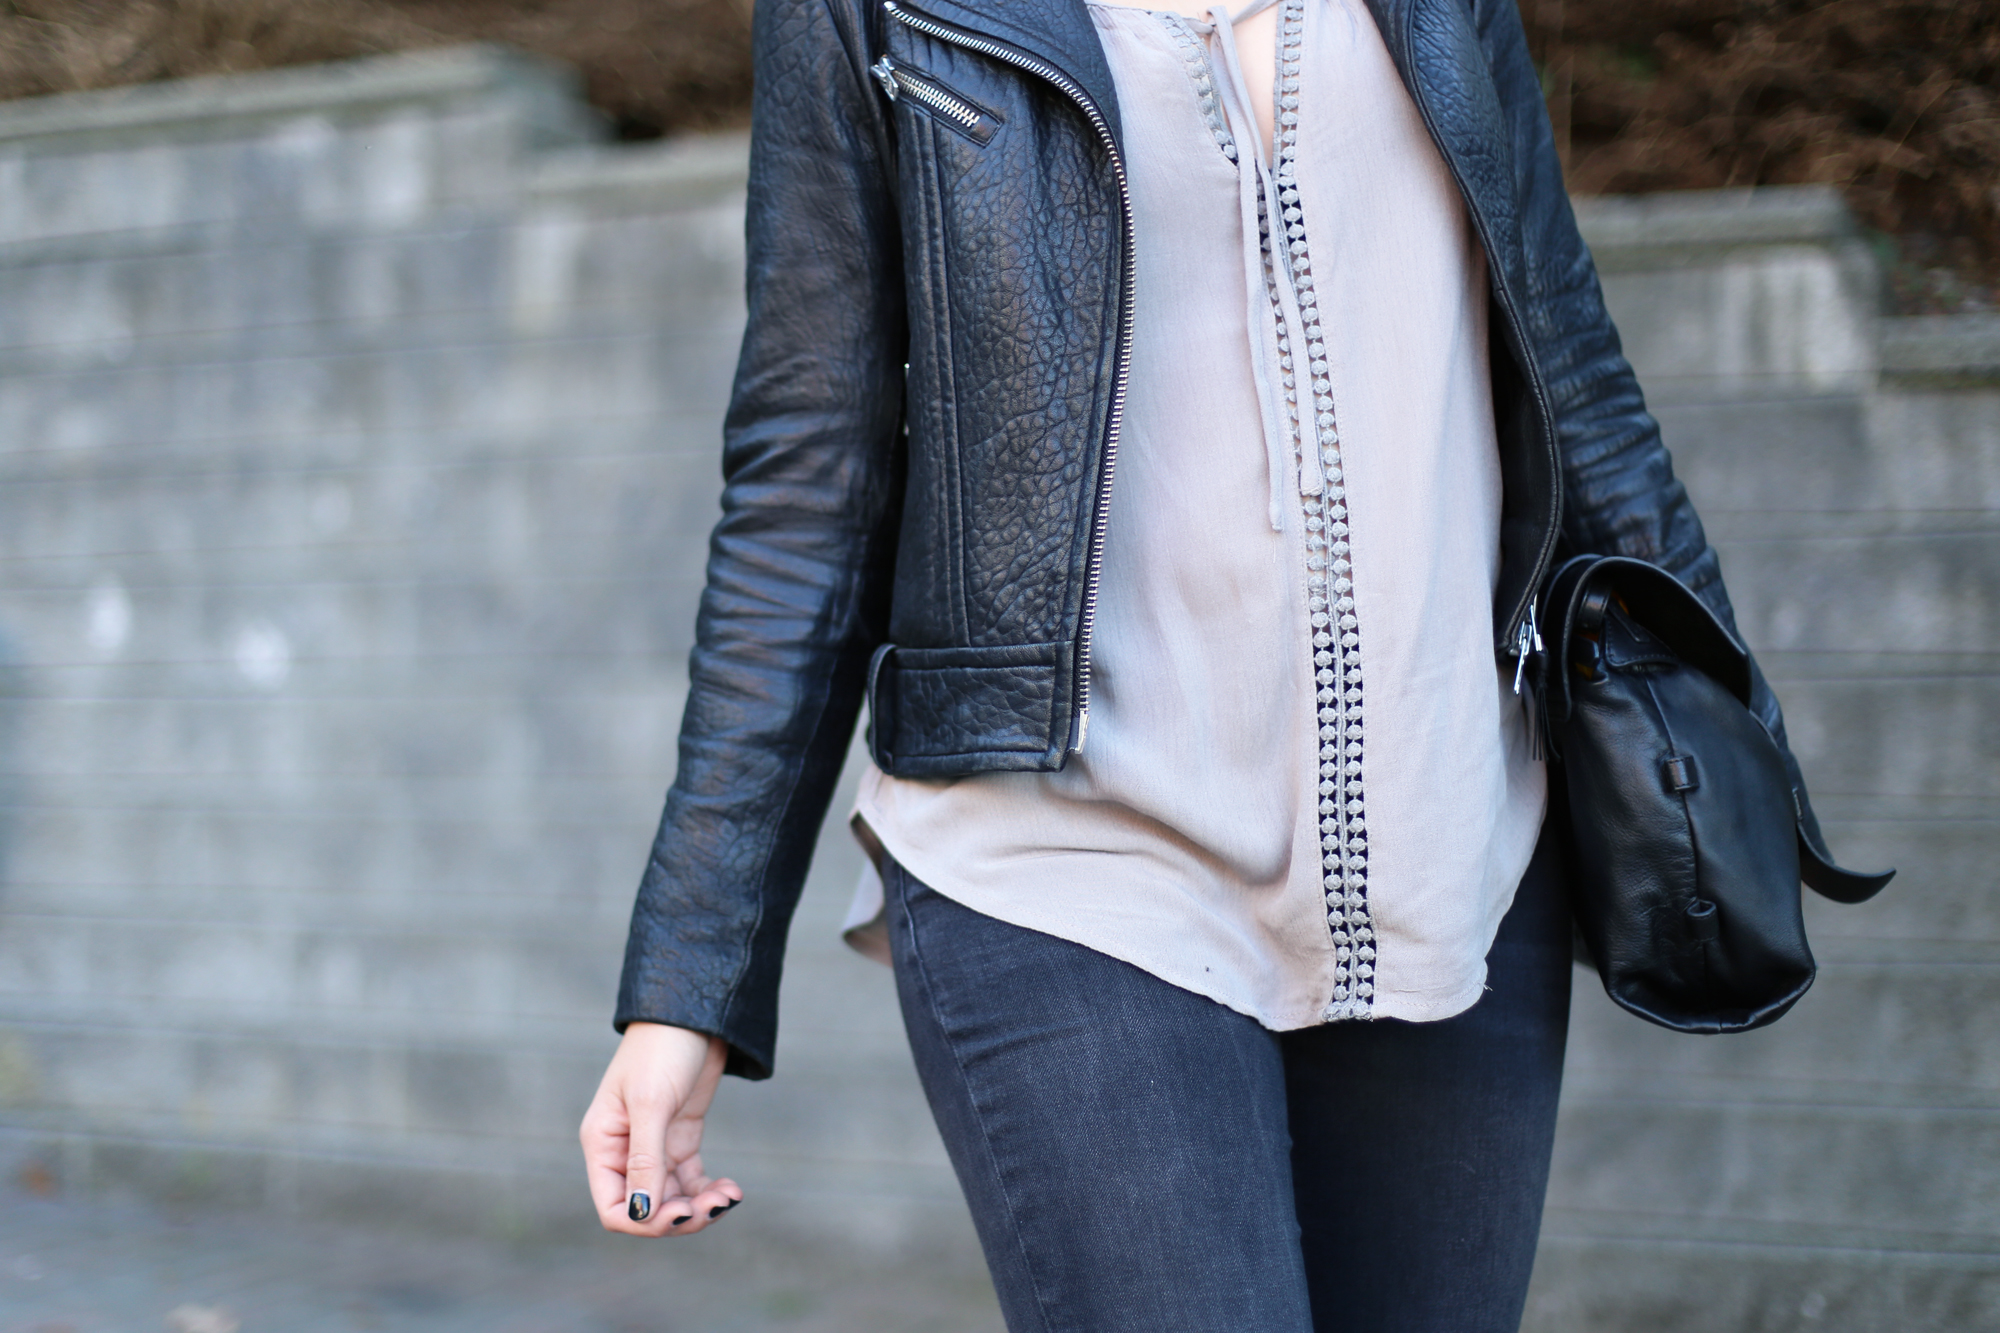 Mackage Rumer pebbled leather jacket. #streetstyle